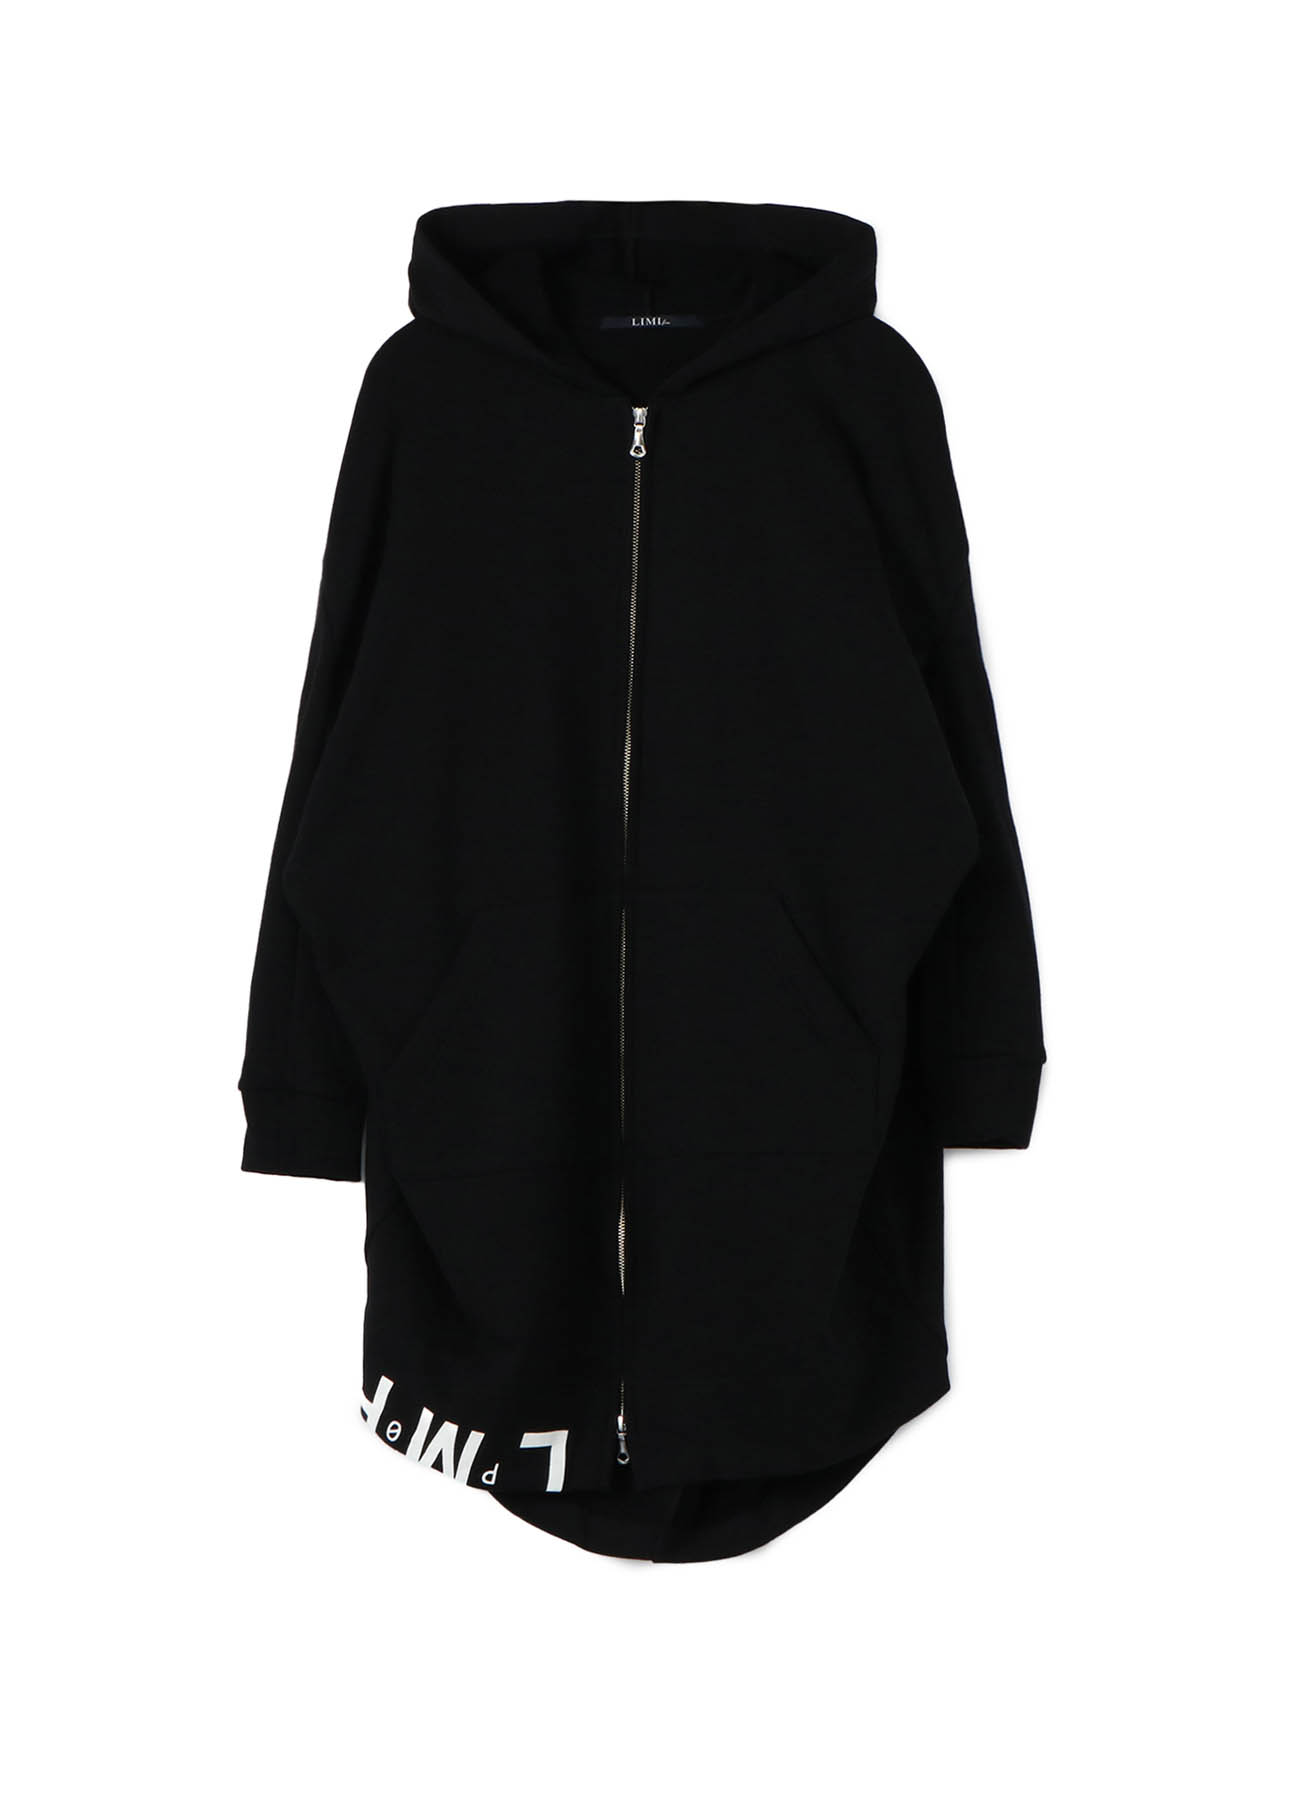 Soft Cotton Fleece Zip Up Hoodie